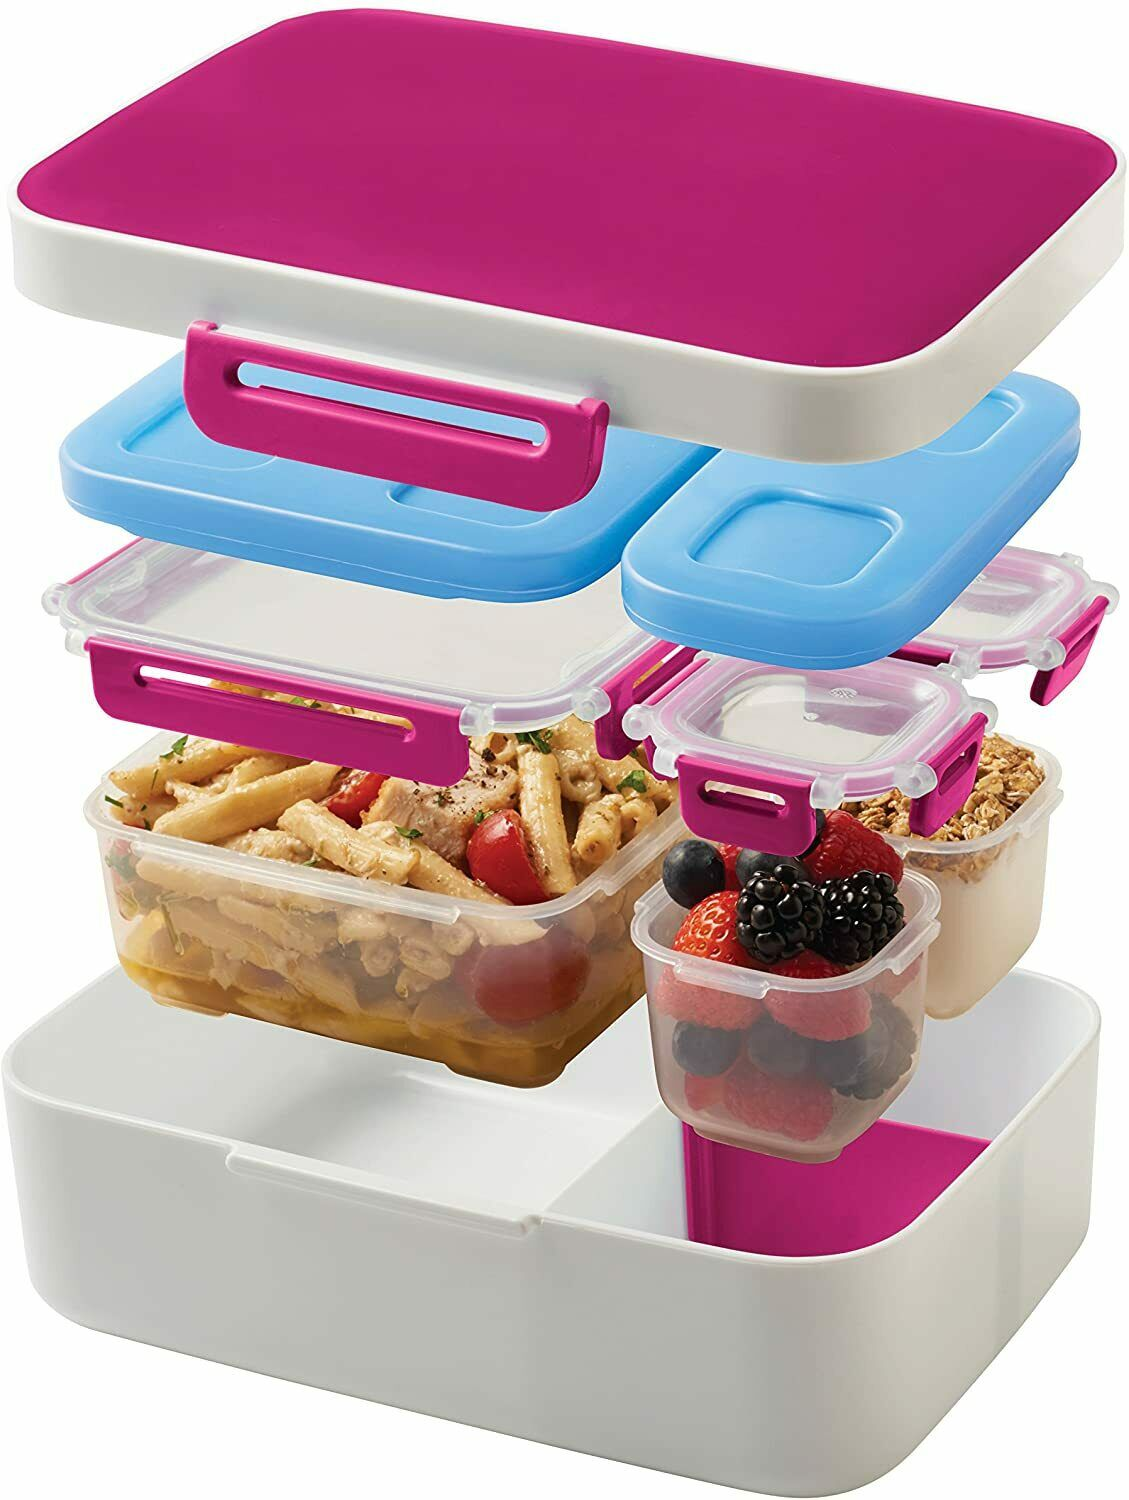 Rubbermaid LunchBlox Leak-Proof Meal Kit Container Kit with Case Red Home & Garden